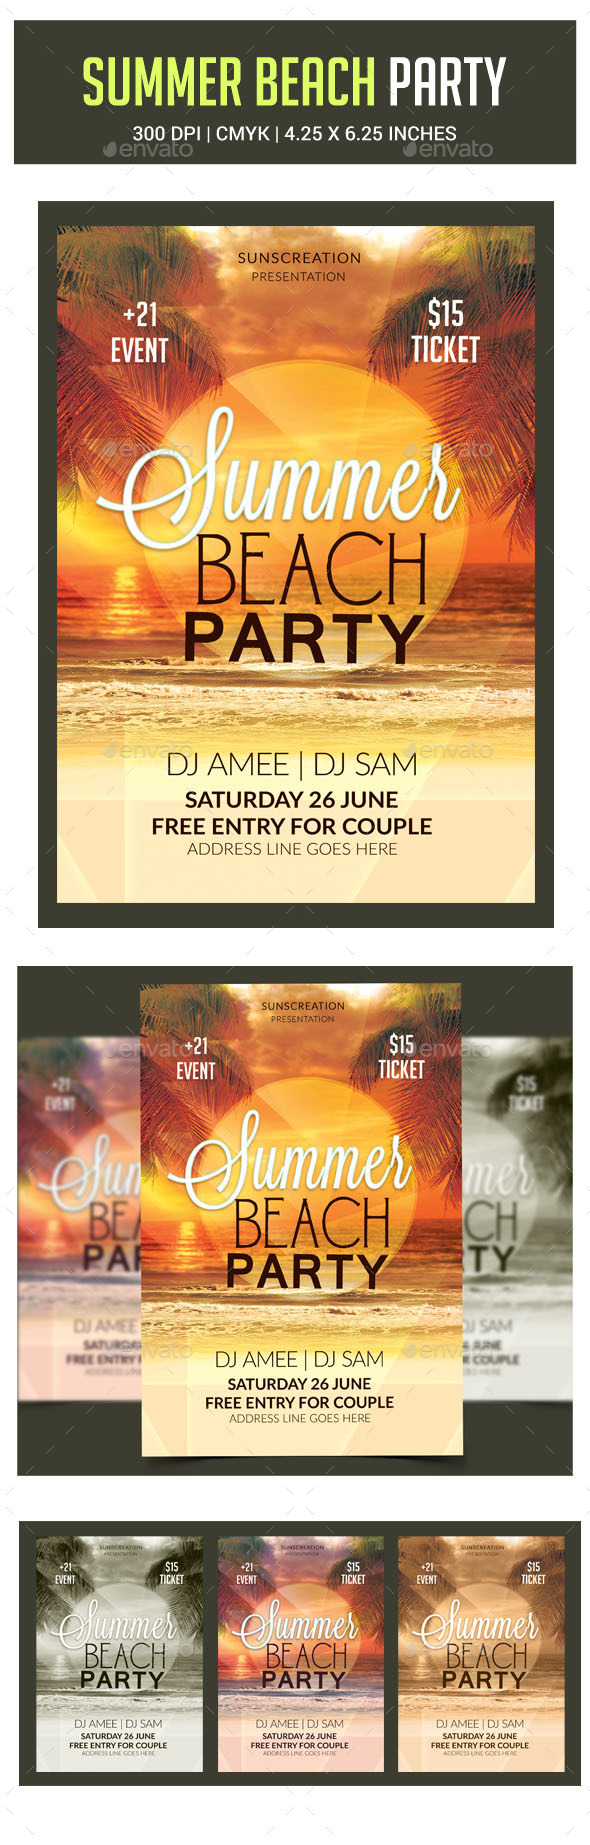 GraphicRiver Summer Beach Party Flyer 10684255